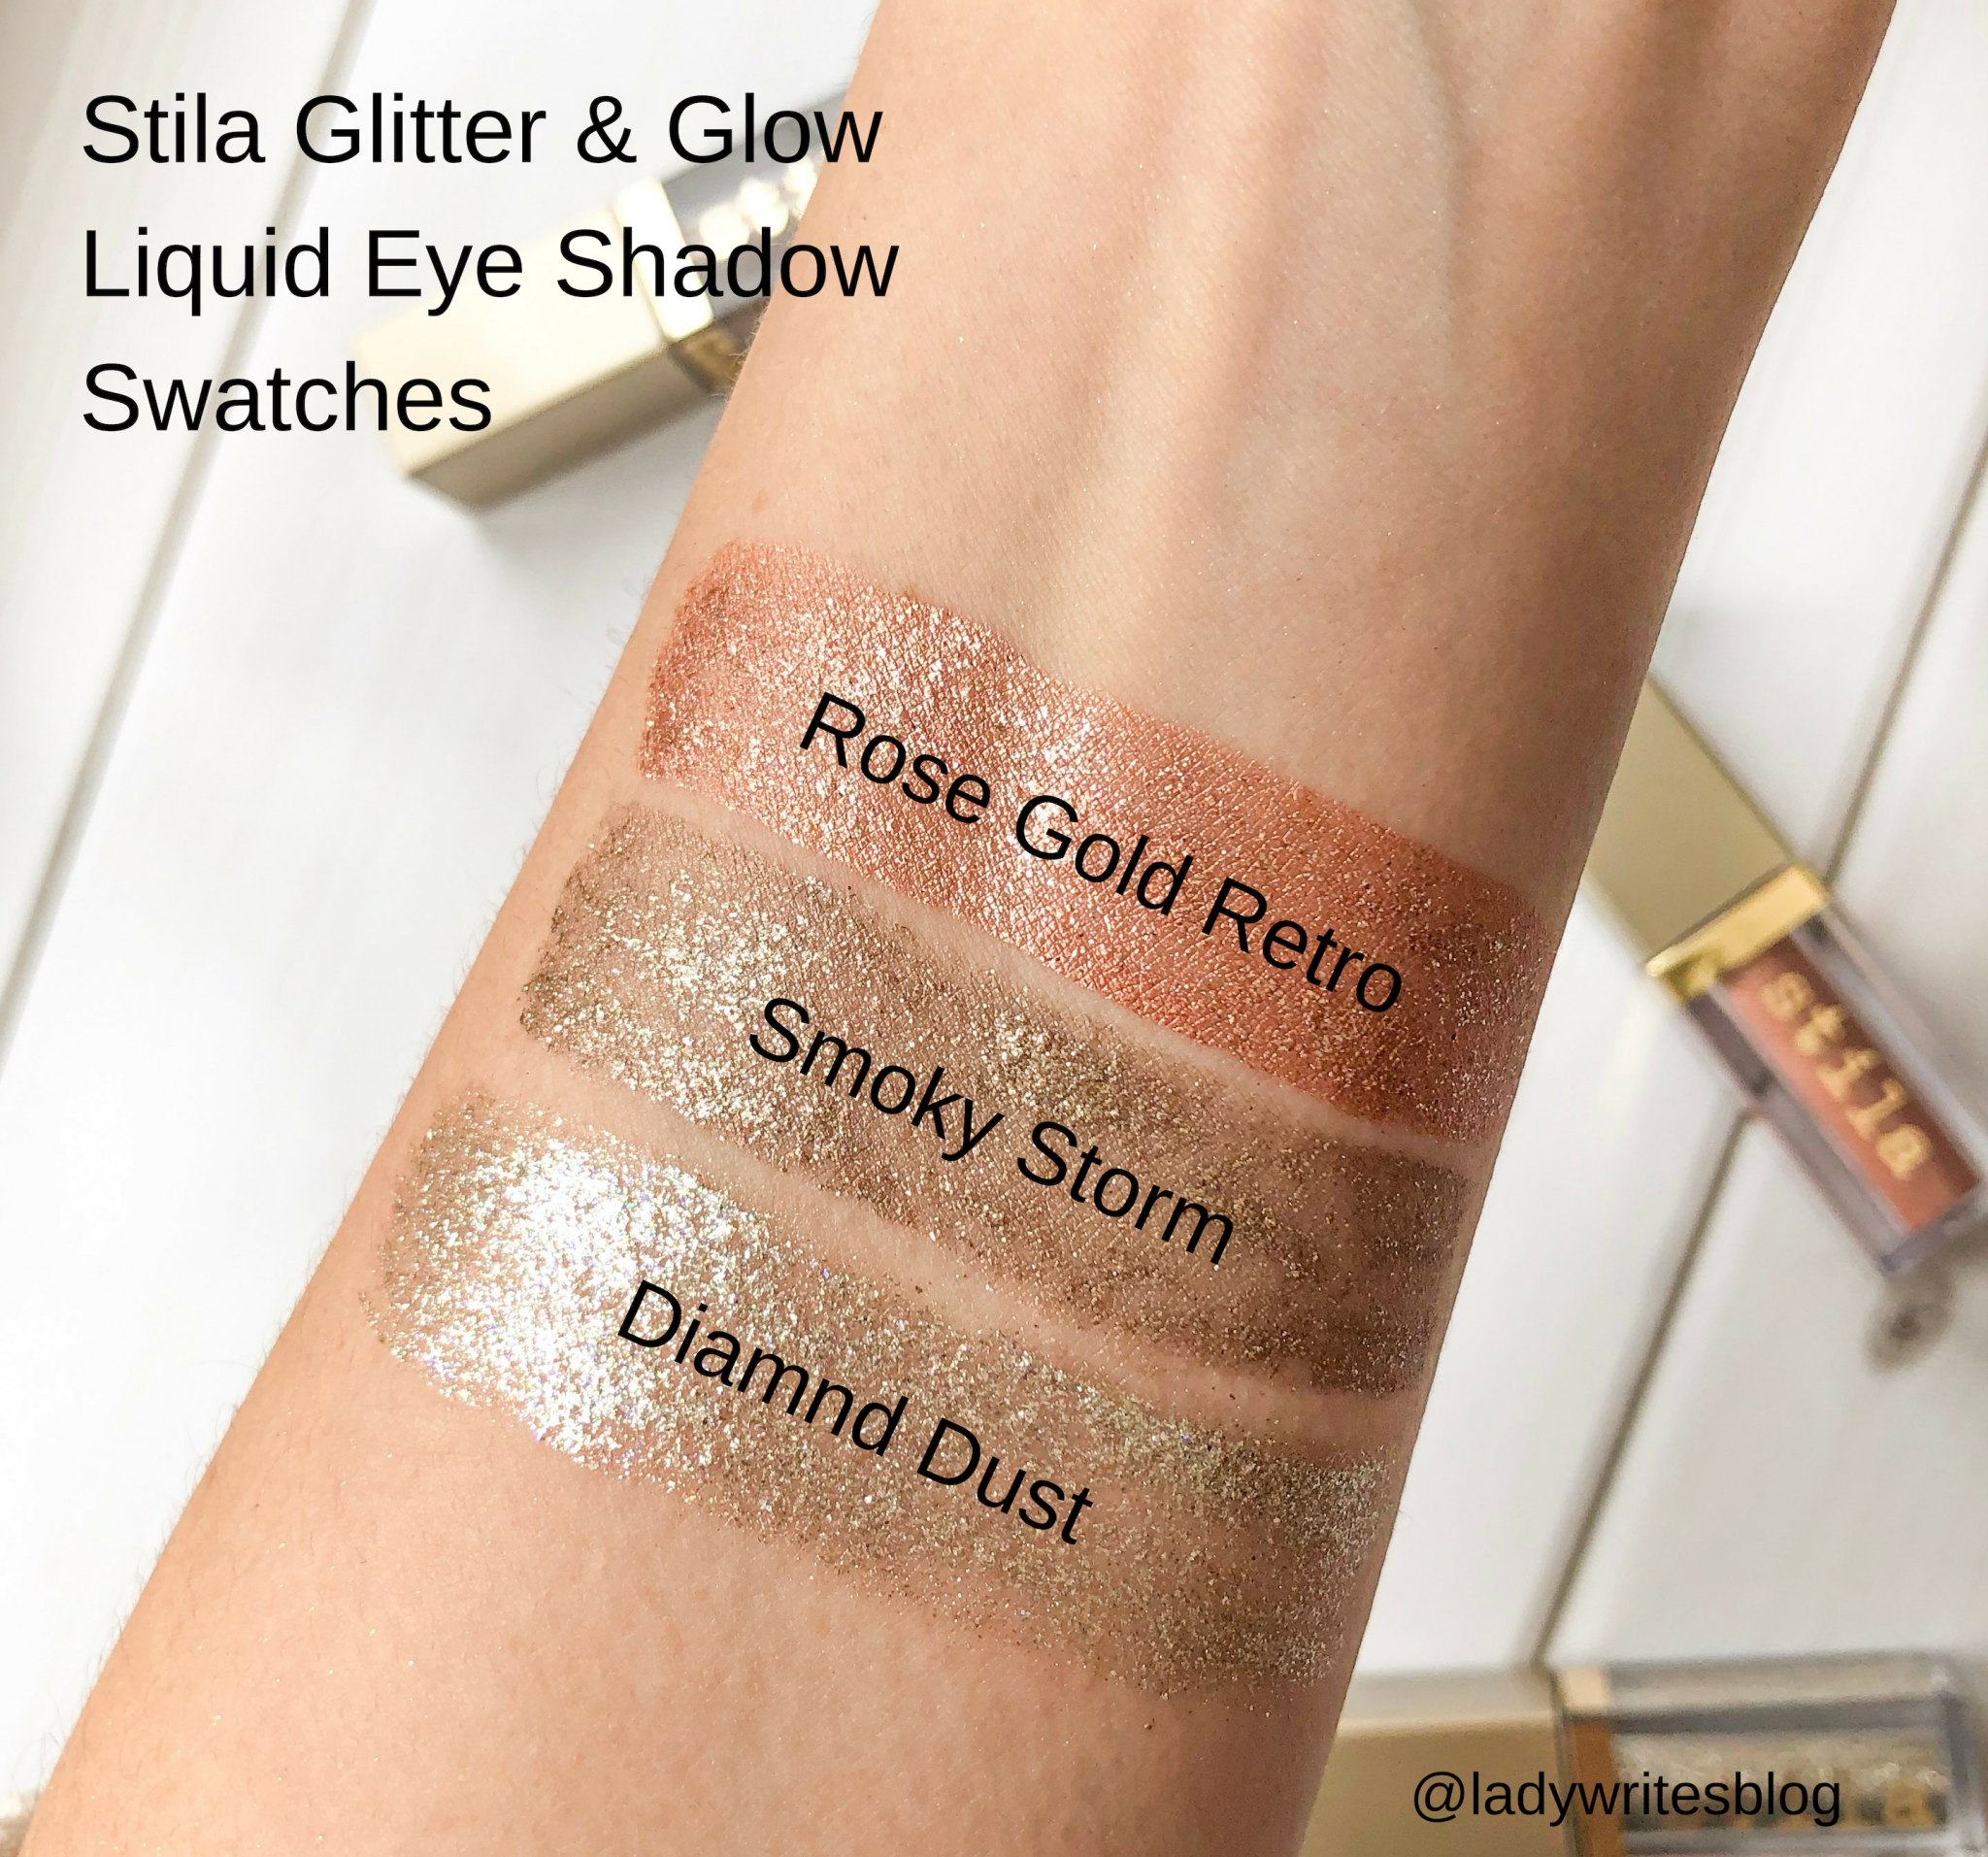 Stila Glitter & Glow Swatches Rose Gold Retro Smoky Storm Diamond Dust